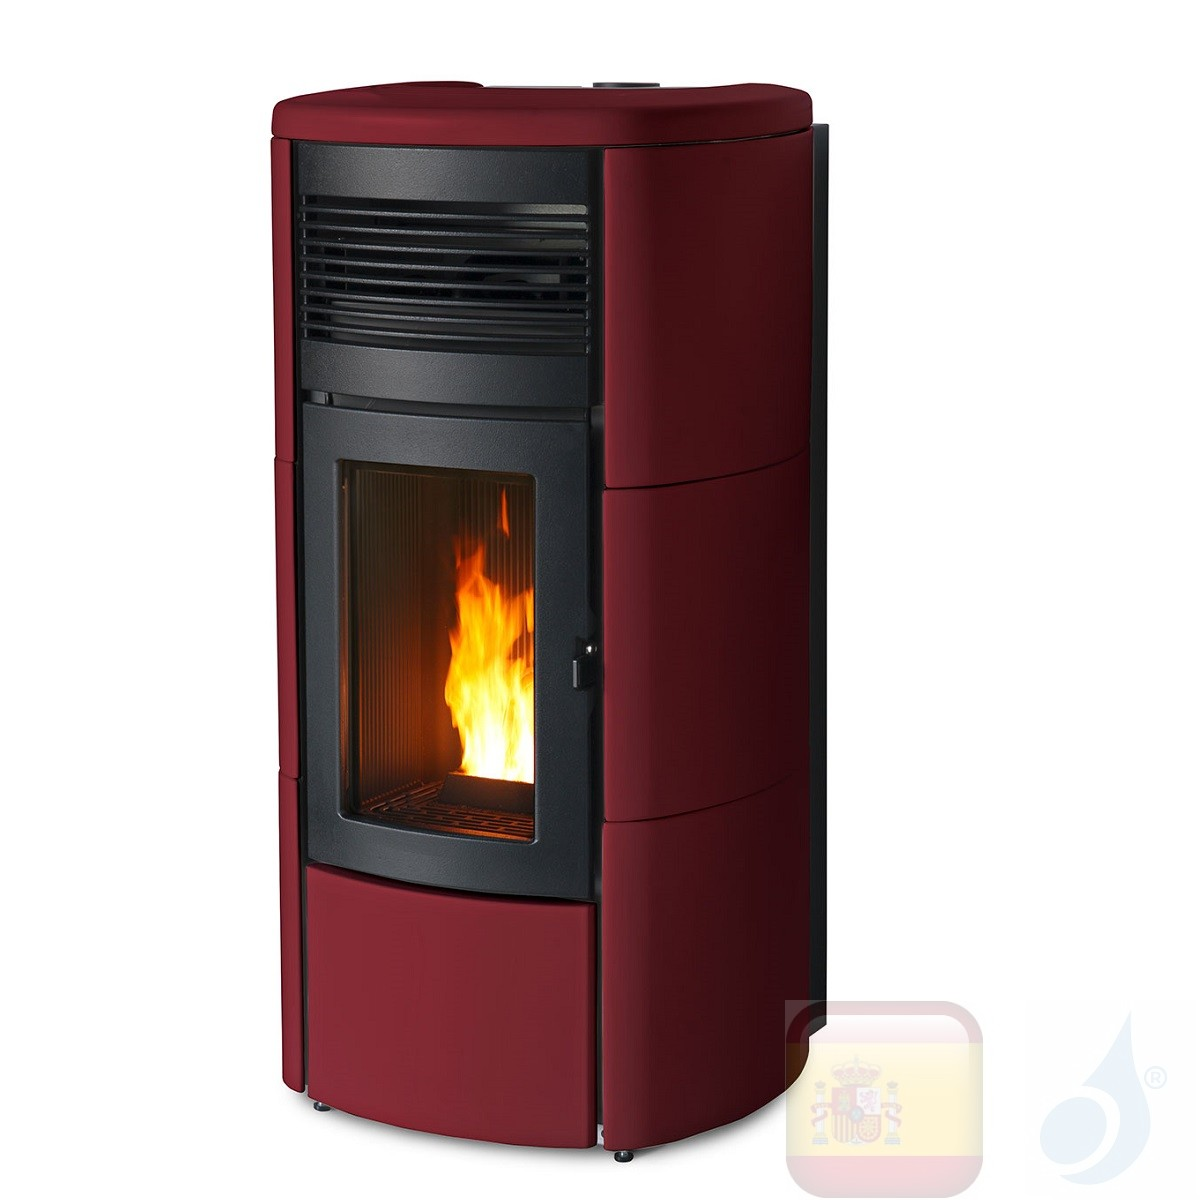 Estufa de pellets MCZ 13.9 kW Club Comfort Air Matic 14 M1 Bordeaux